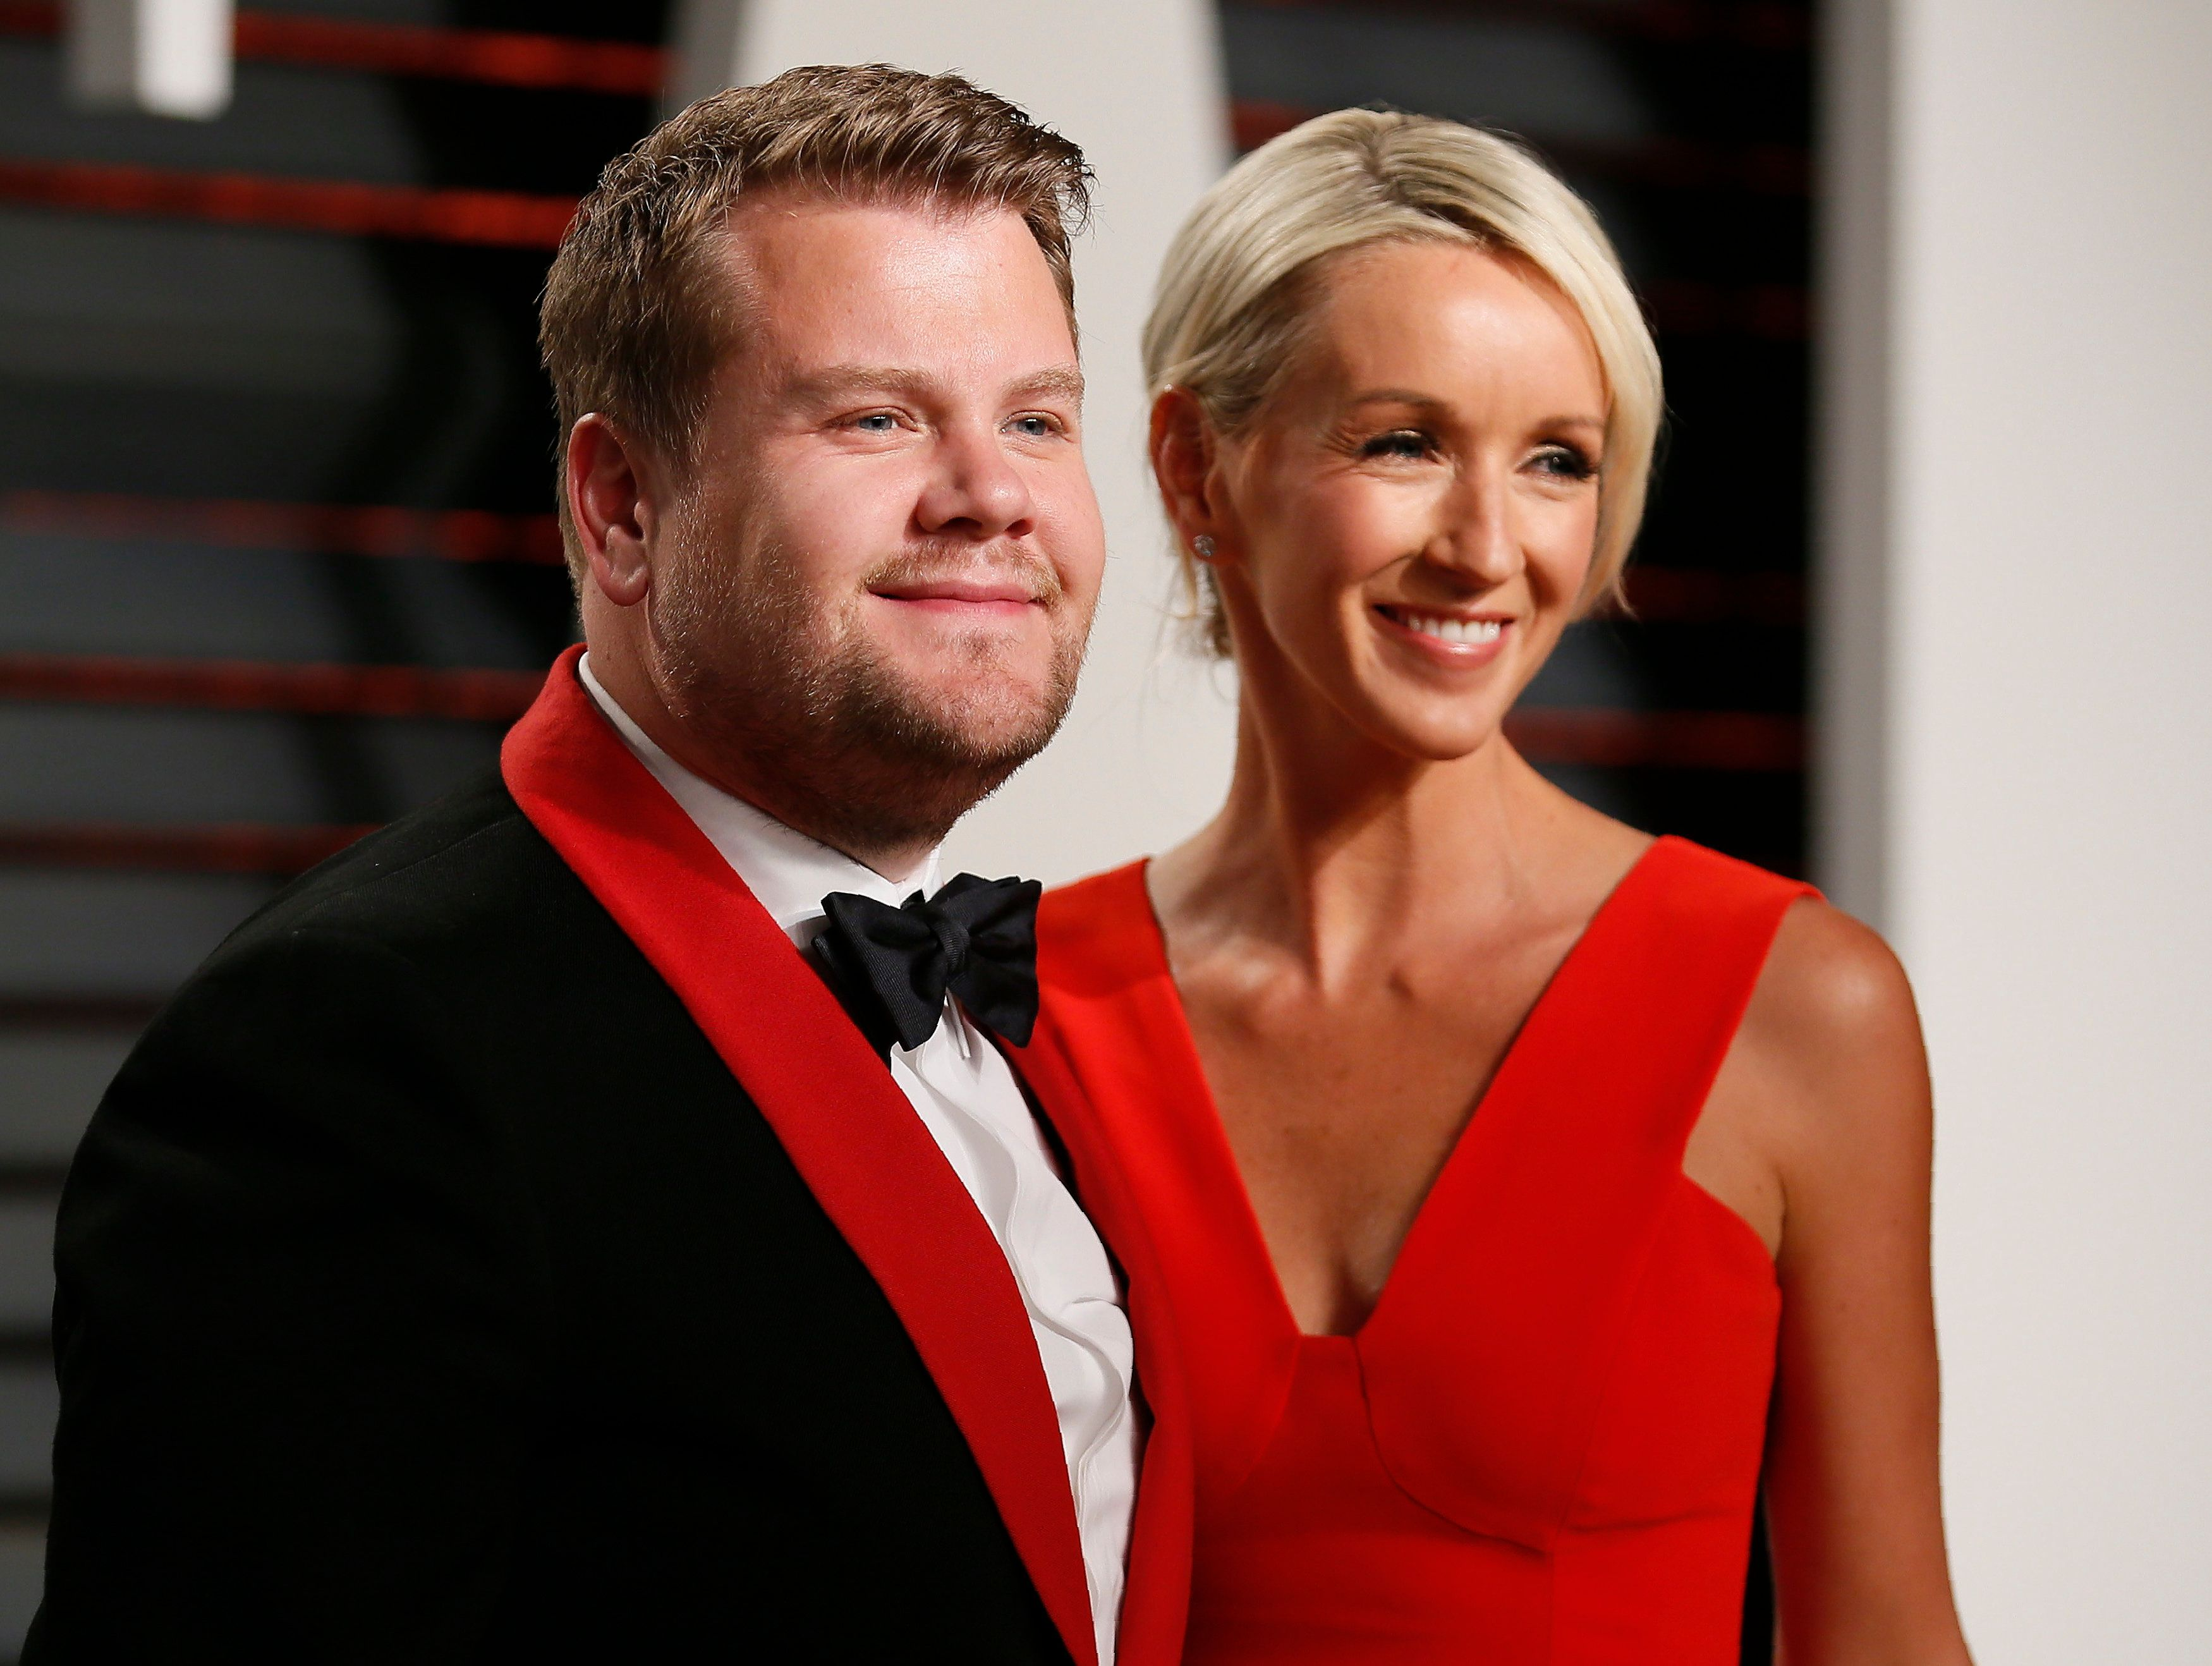 'We Can't Stop Smiling': James Corden And Wife Julia Carey Welcome Baby Girl